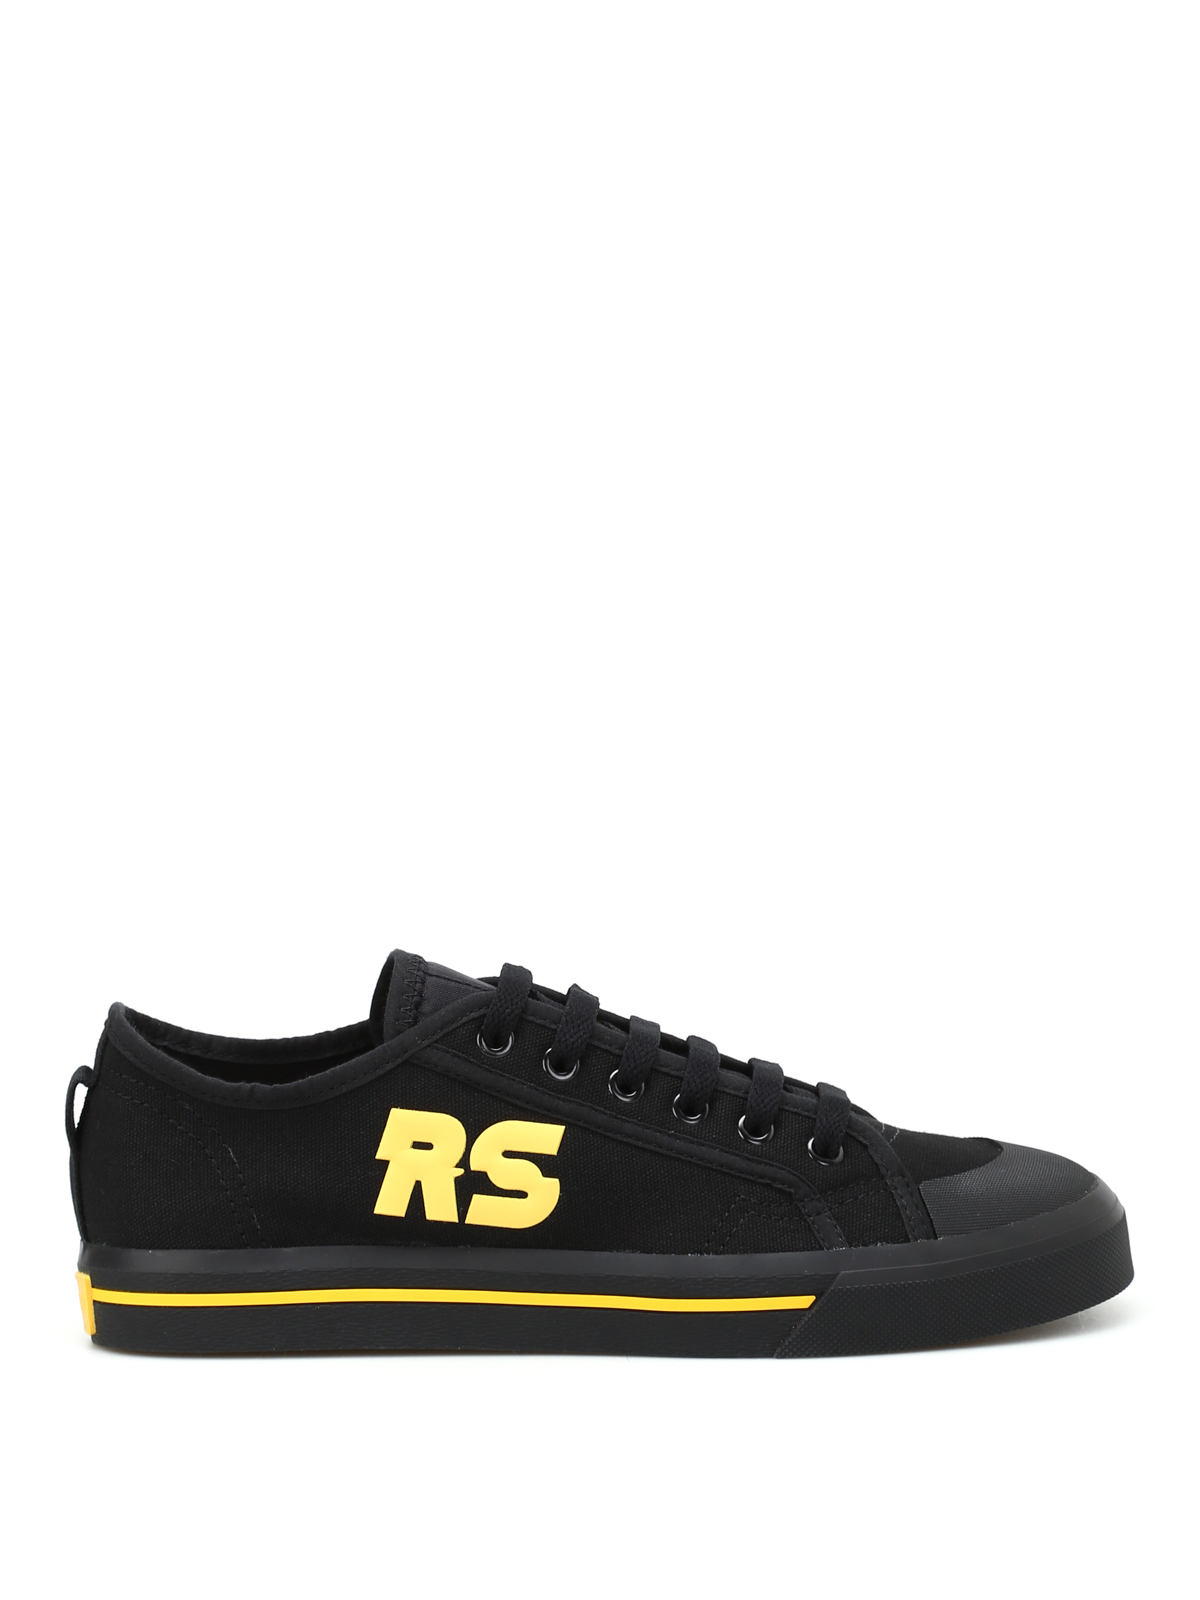 spirit low canvas sneakers by raf simons adidas trainers. Black Bedroom Furniture Sets. Home Design Ideas